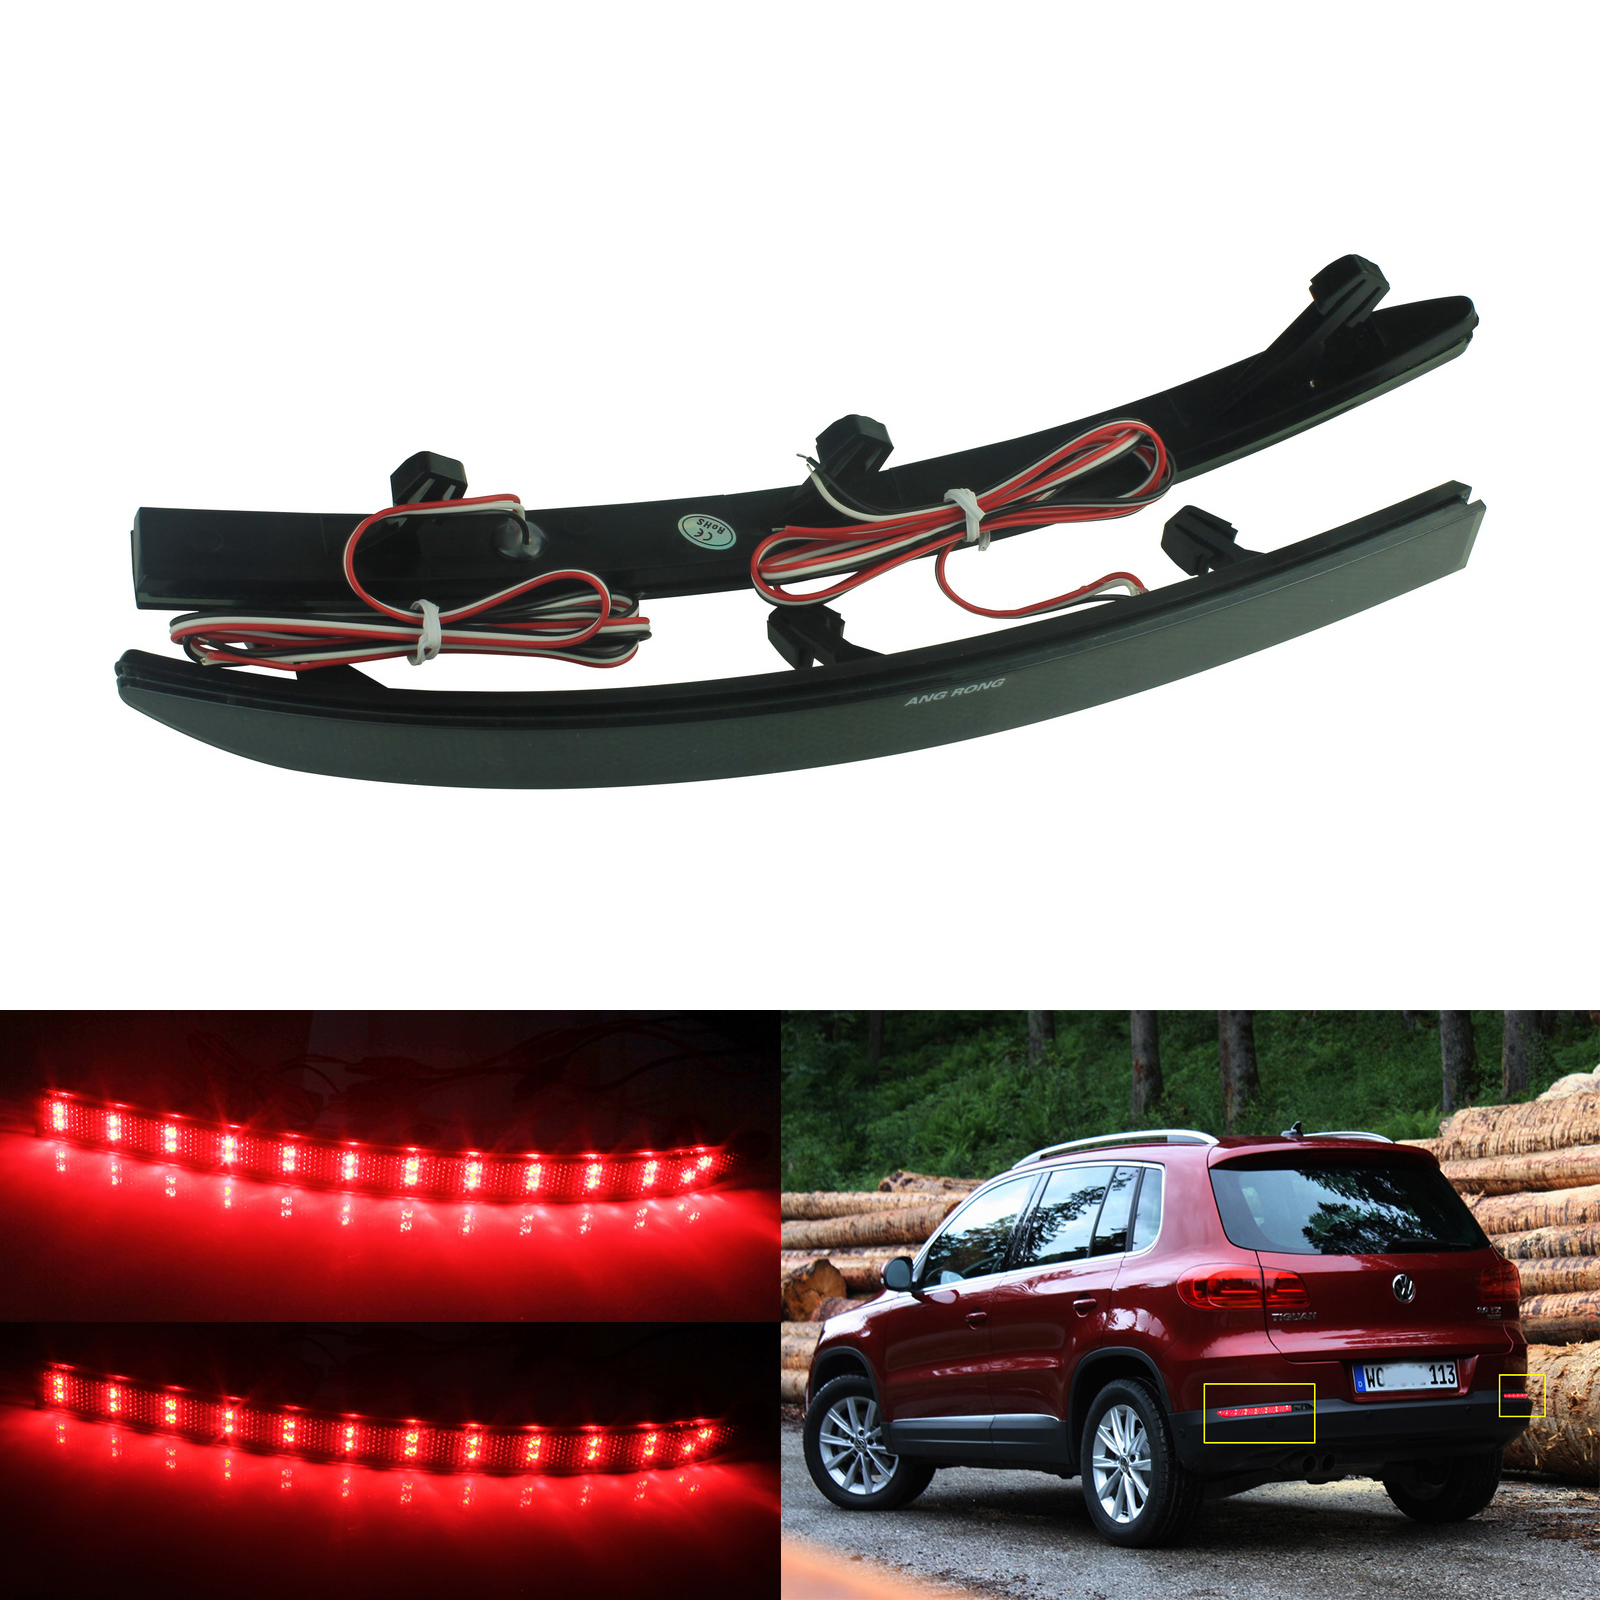 UPSM Rear Bumper Red Reflector Light Left Side Fit for VW Tiguan 2008-2015 5N0945105